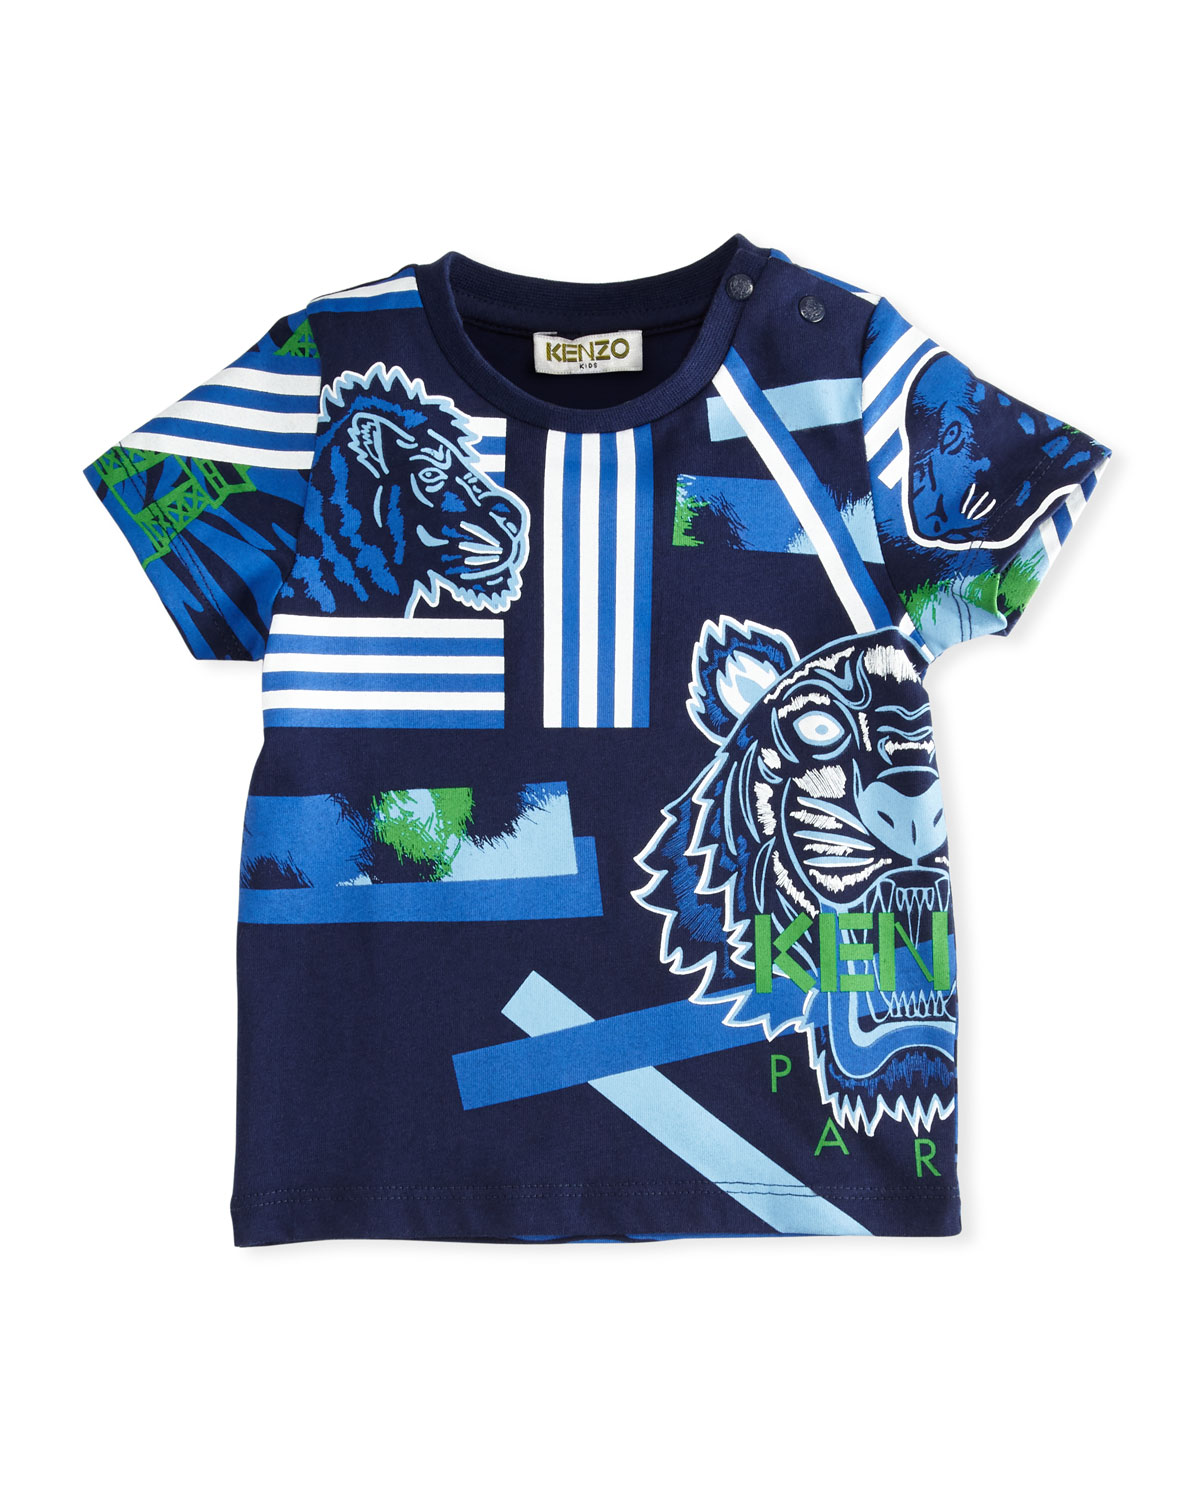 67c7048b Kenzo Multi-Icon Tiger Striped T-Shirt, Navy, Size 12-18 Months ...